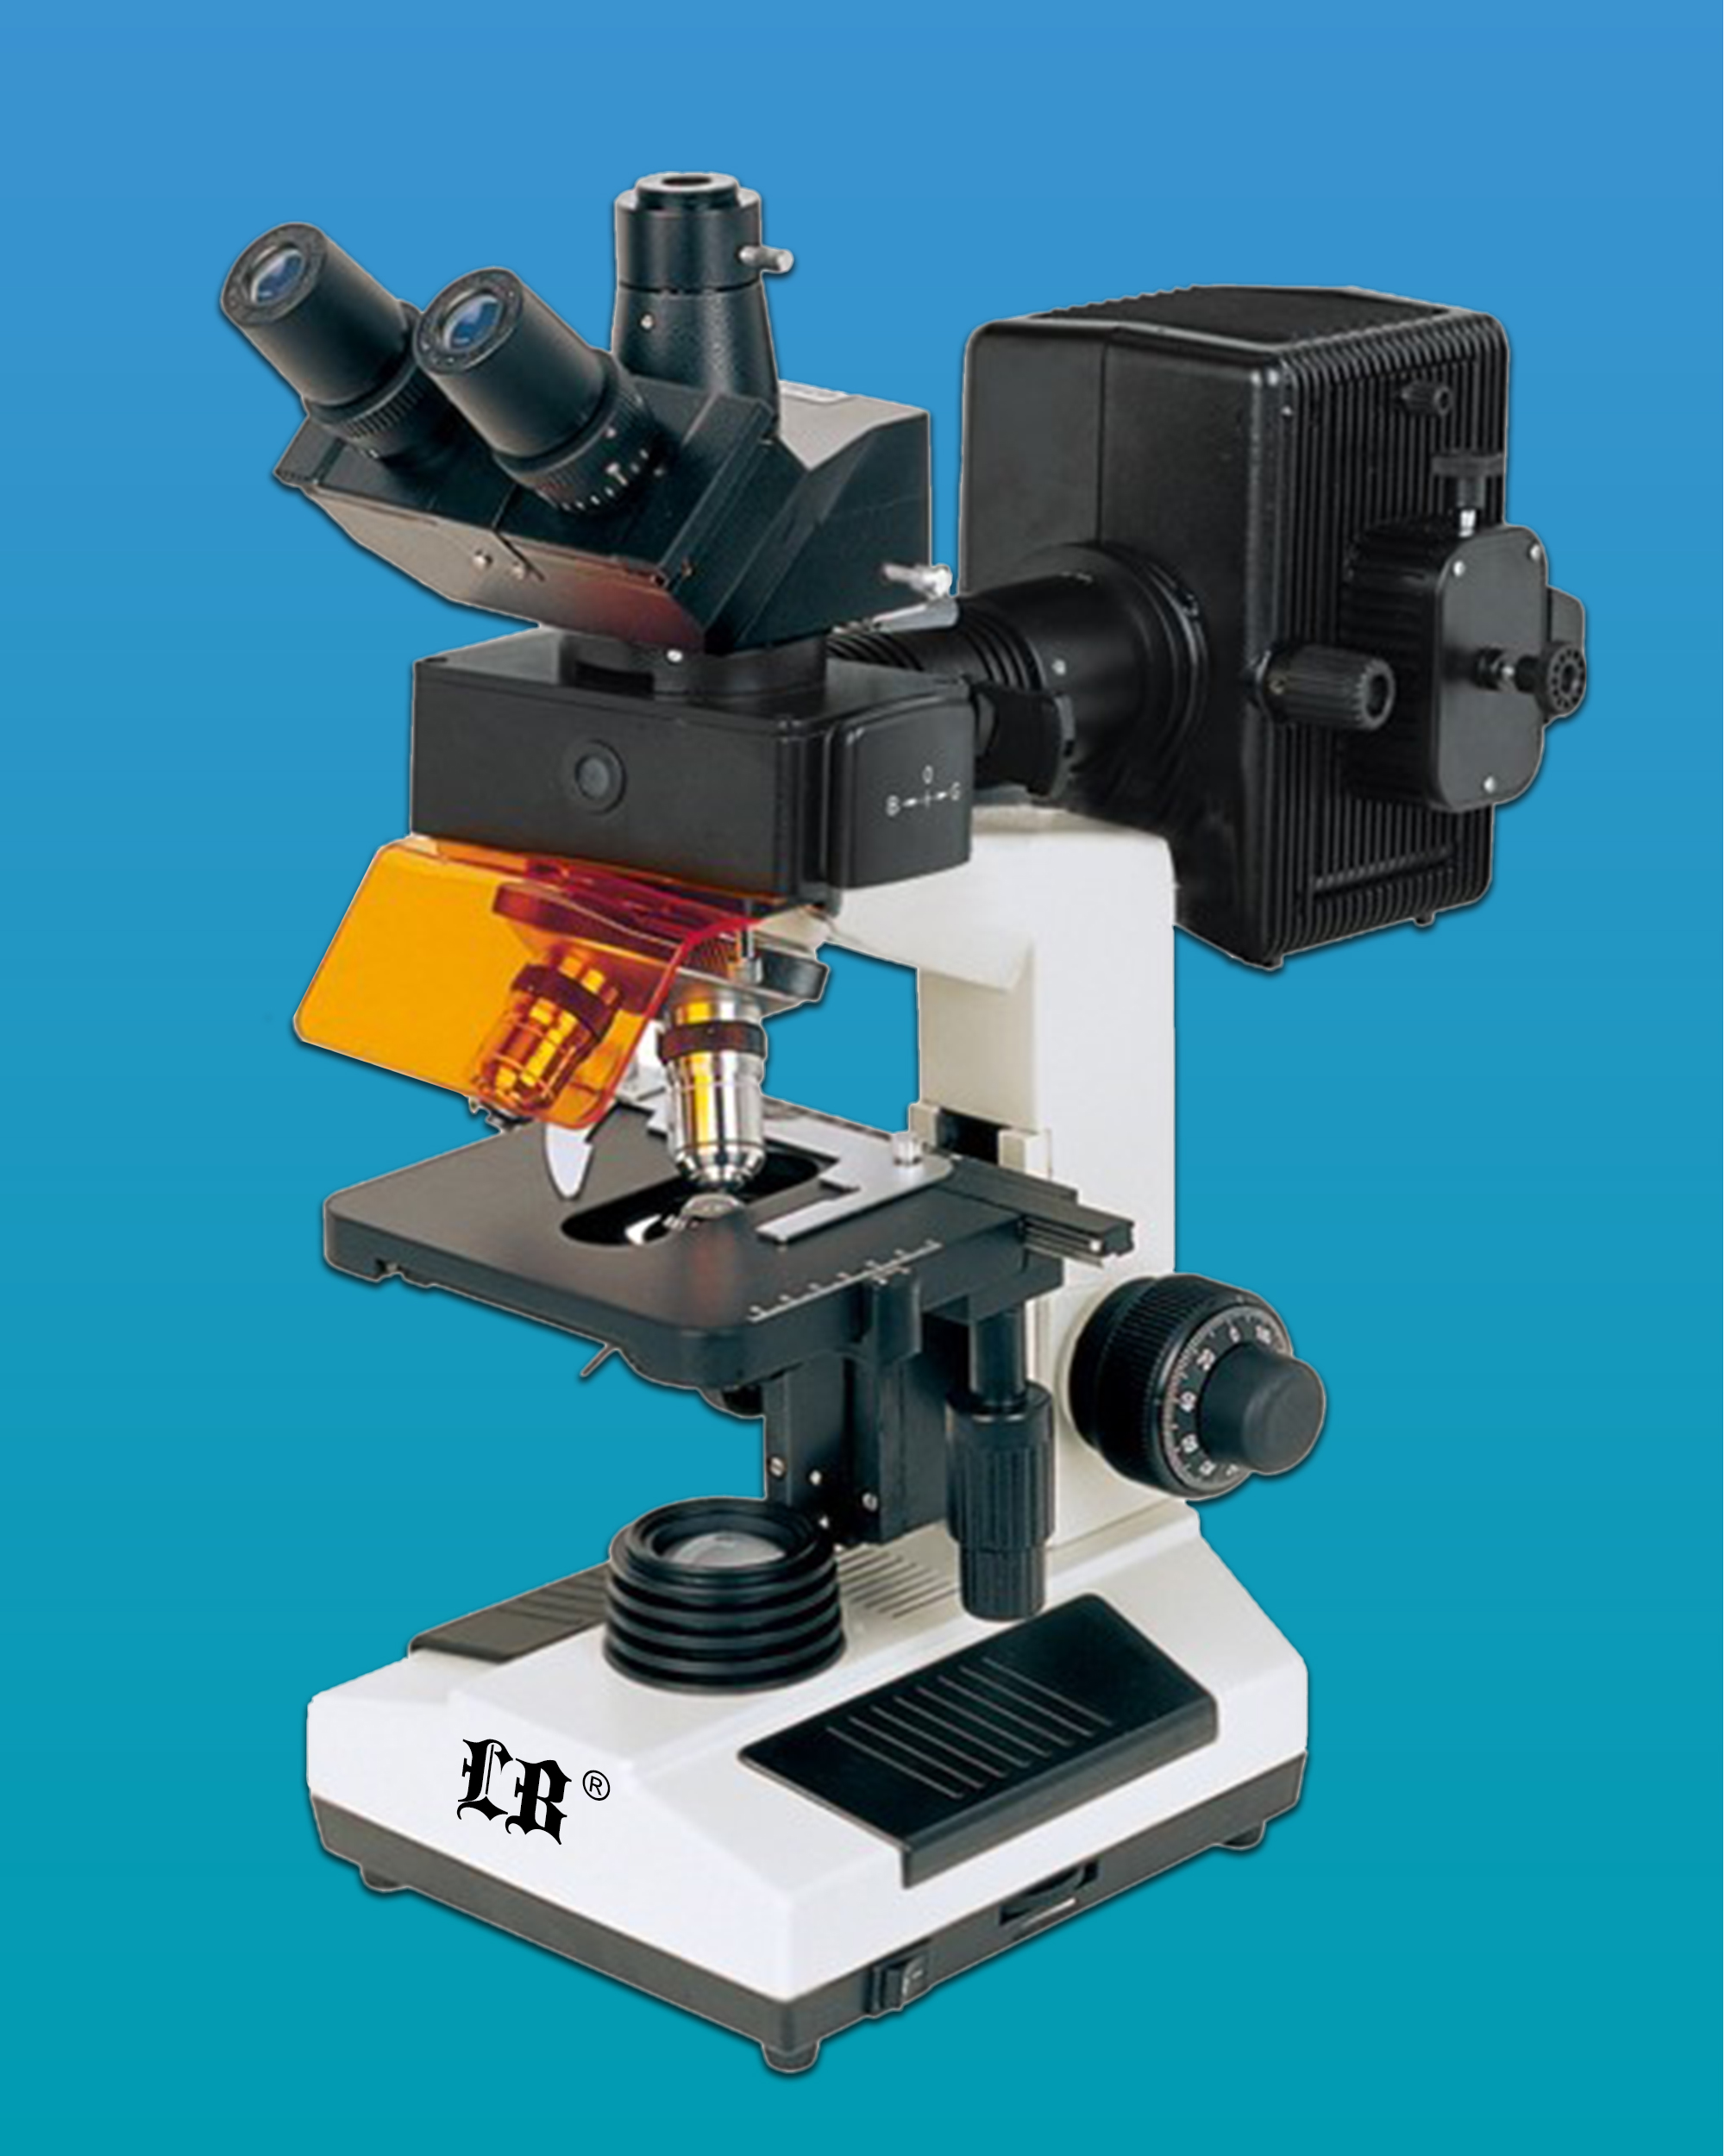 [LB-208T] Fluorescent Biological Trinocular Microscope with Achromatic Objective 4×, 10×, 40×, 100×